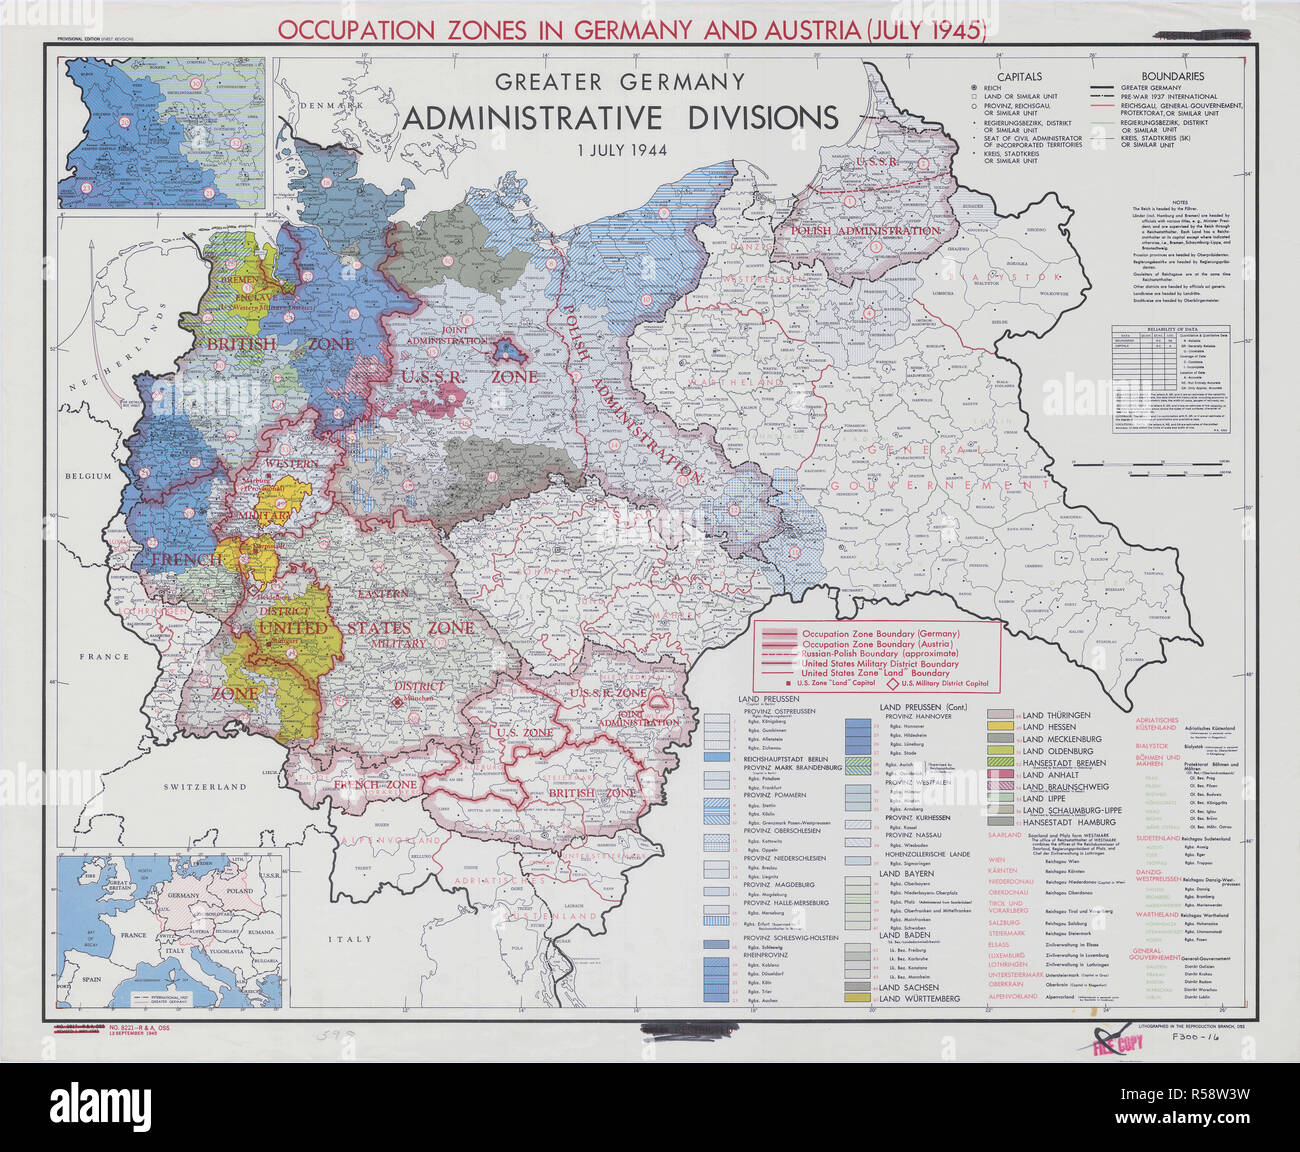 Map Of Germany Occupation Zones.July 1945 World War Ii Maps And Charts Map Showing Occupation